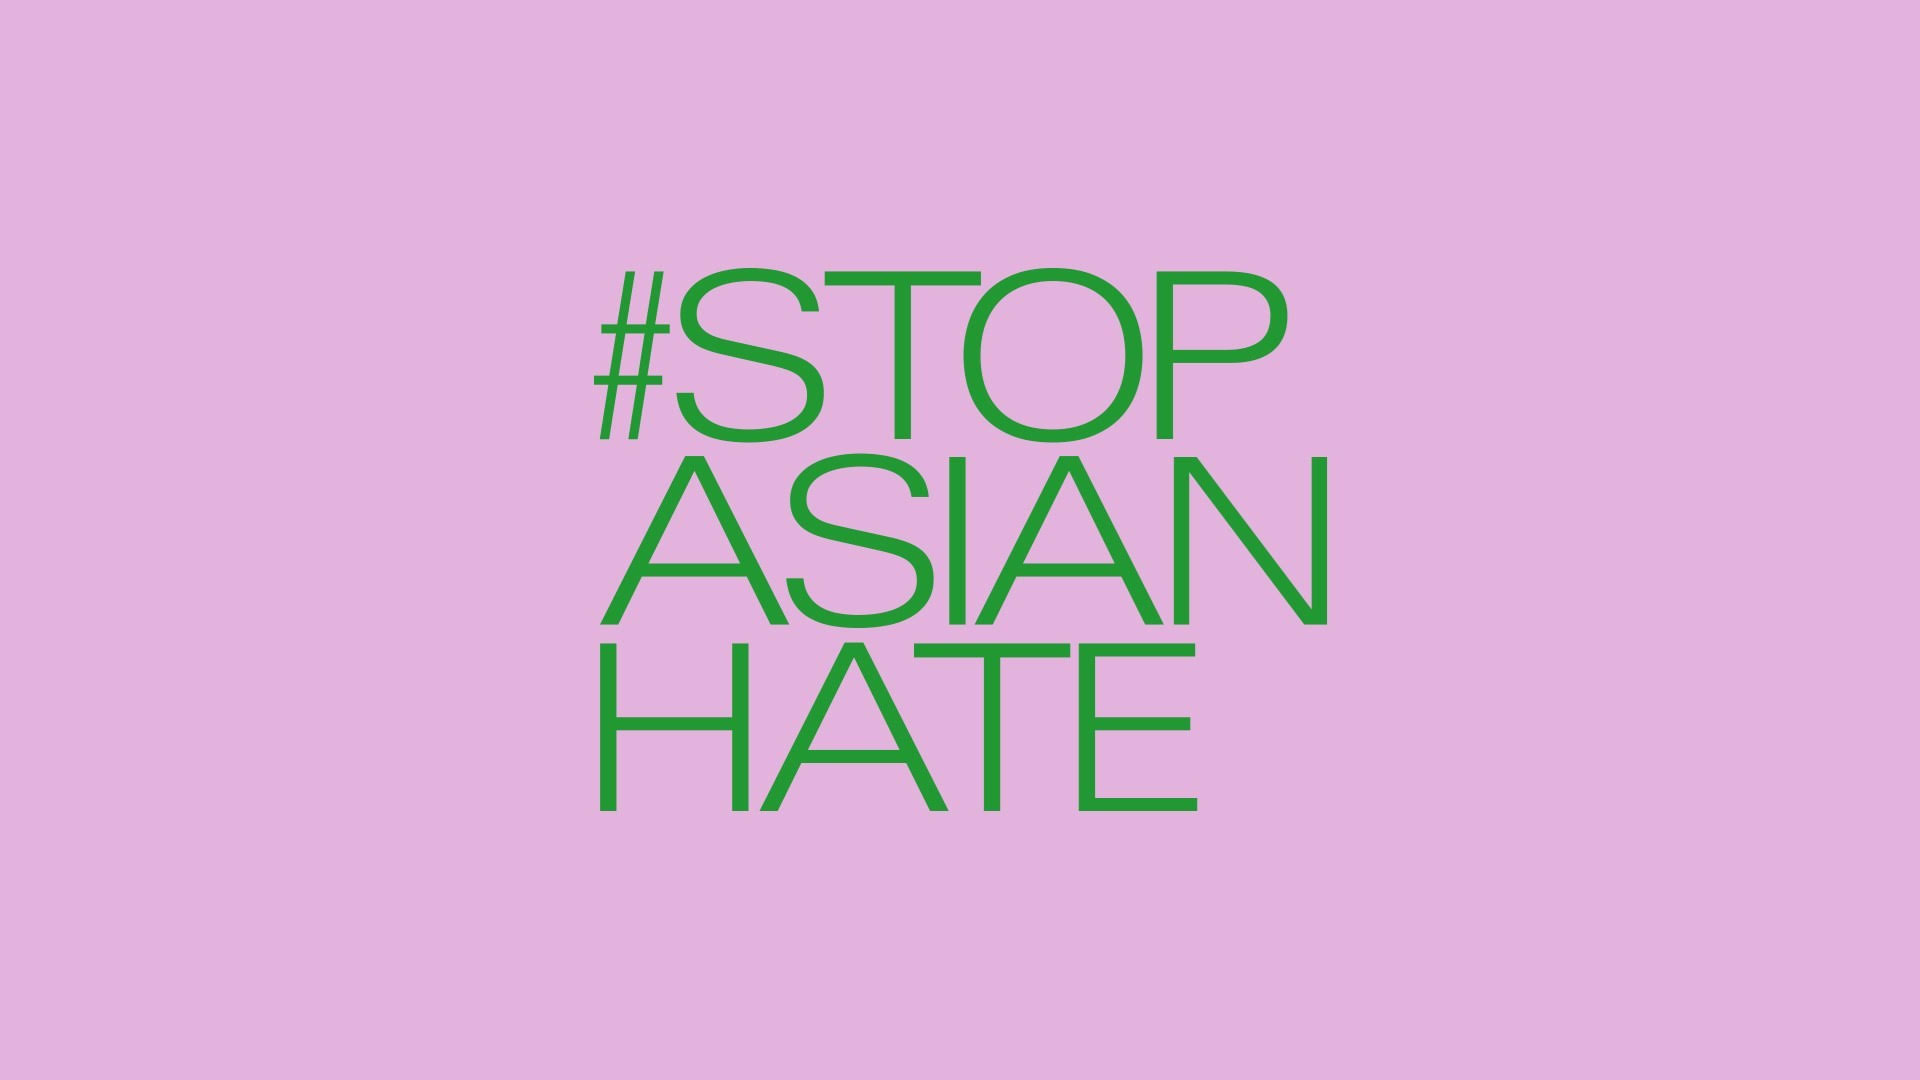 The Reputation Doctor® and other crisis communications experts share advice for City of Atlanta communications team #StopAsianHate